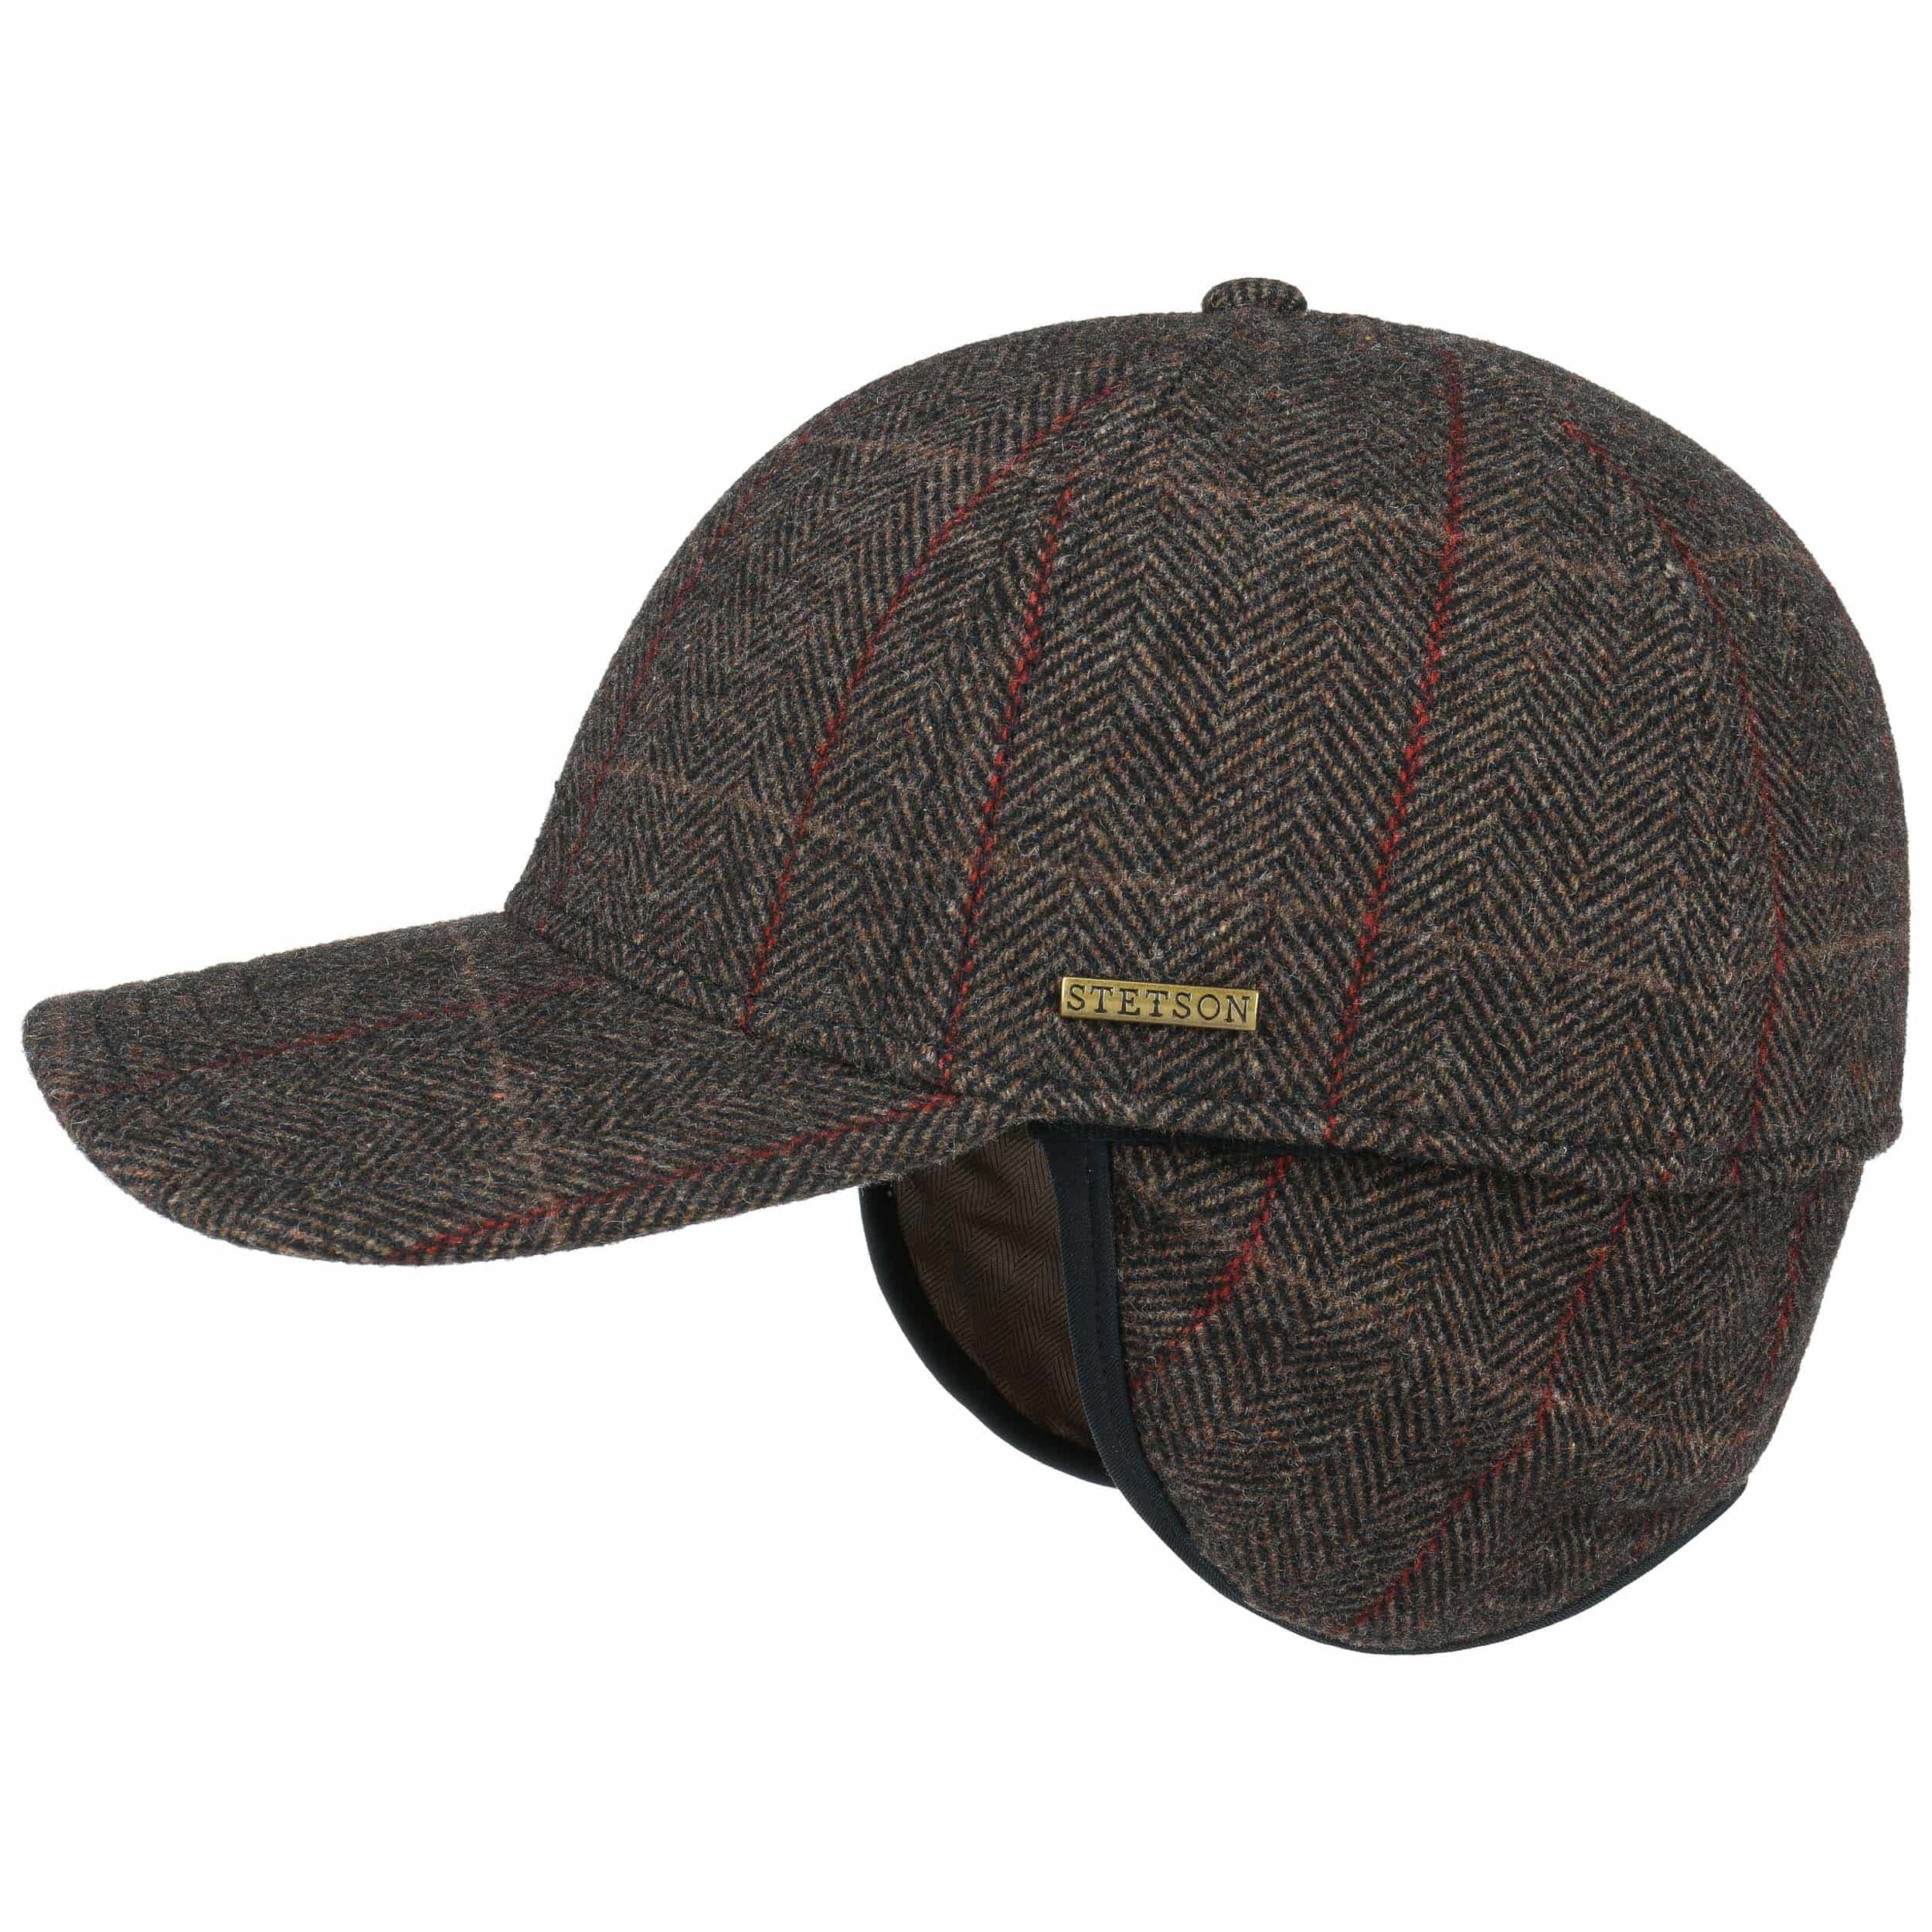 Stetson Kinty Wool Cap With Ear Flaps Brown Stetson Eu